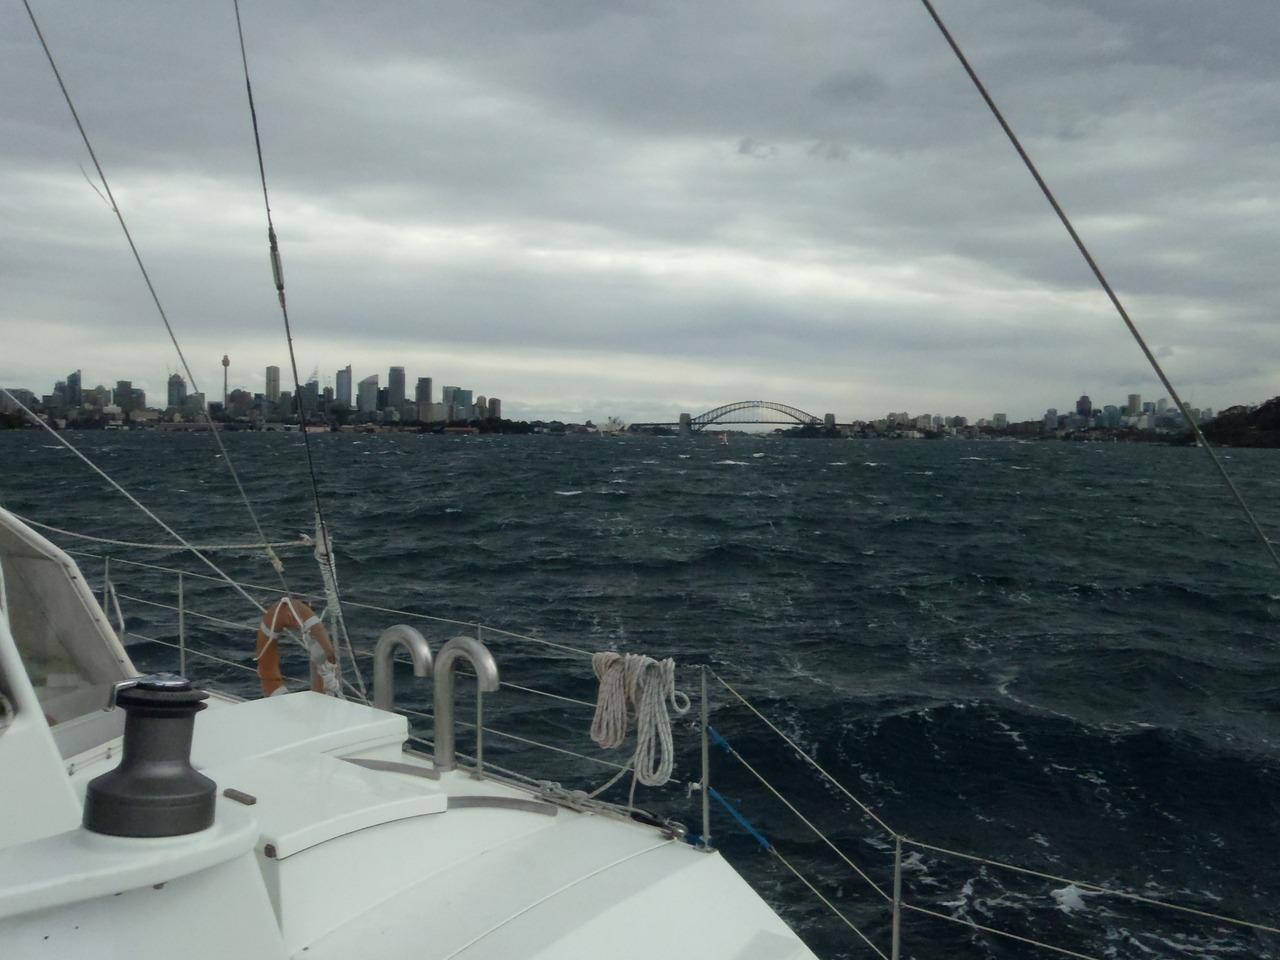 Pelican1 blasting into Sydney Harbour on her first leg of Pacific journey. Flying in 40 knots on a single tack up to Rushcutters Bay. #sailing #pacificjourney Photo- Karl Chappell- First Mate.